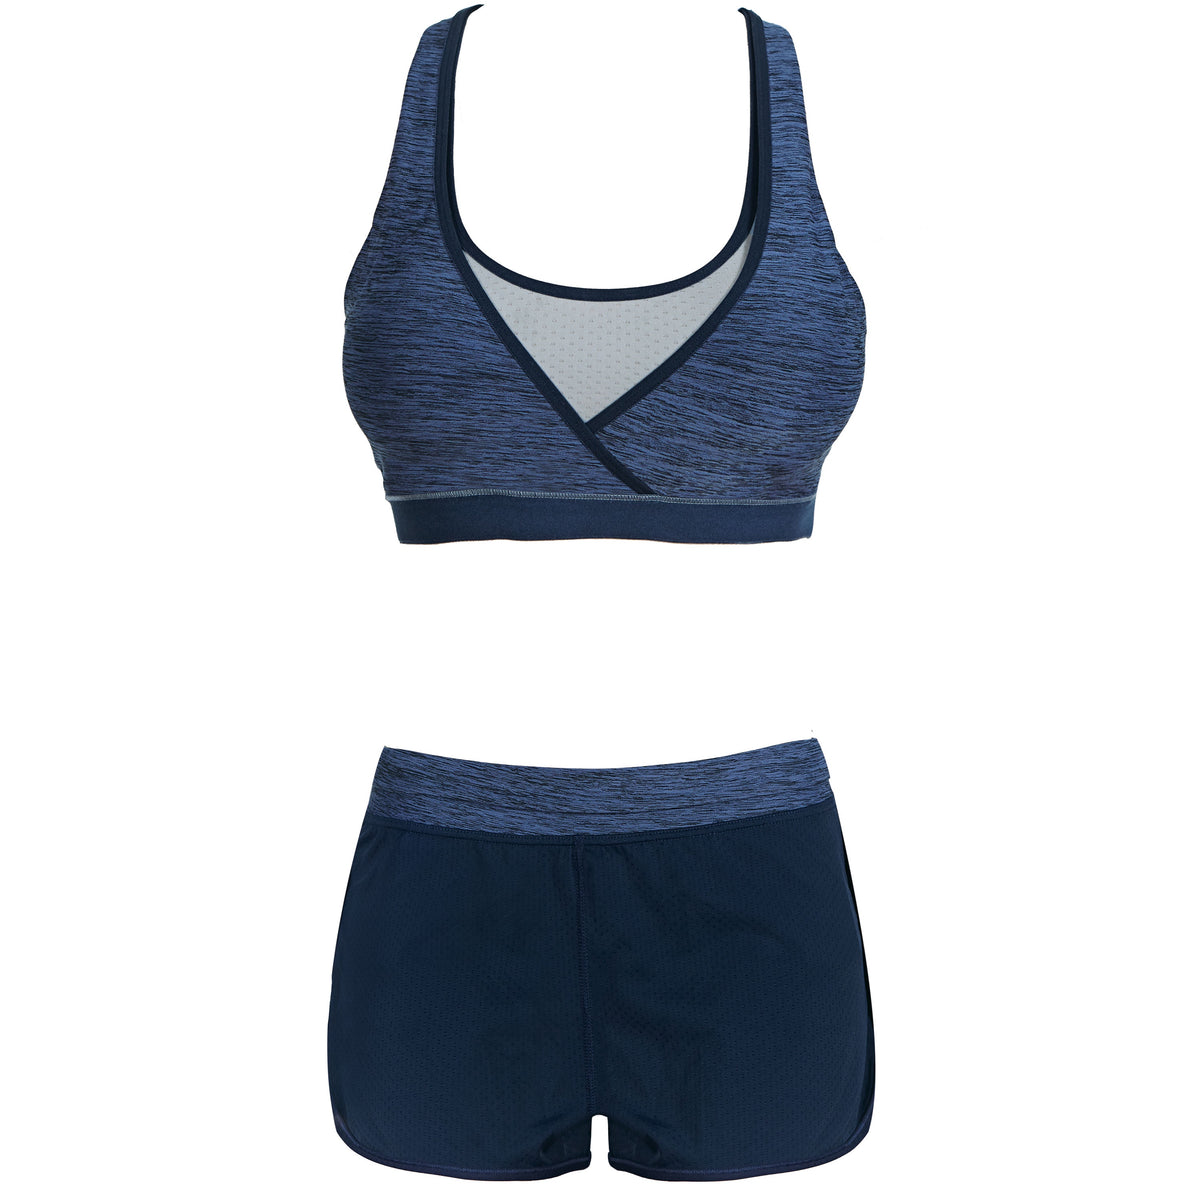 AC4010TTE Freestyle Soft Crop Top |TOTAL ECLIPSE|